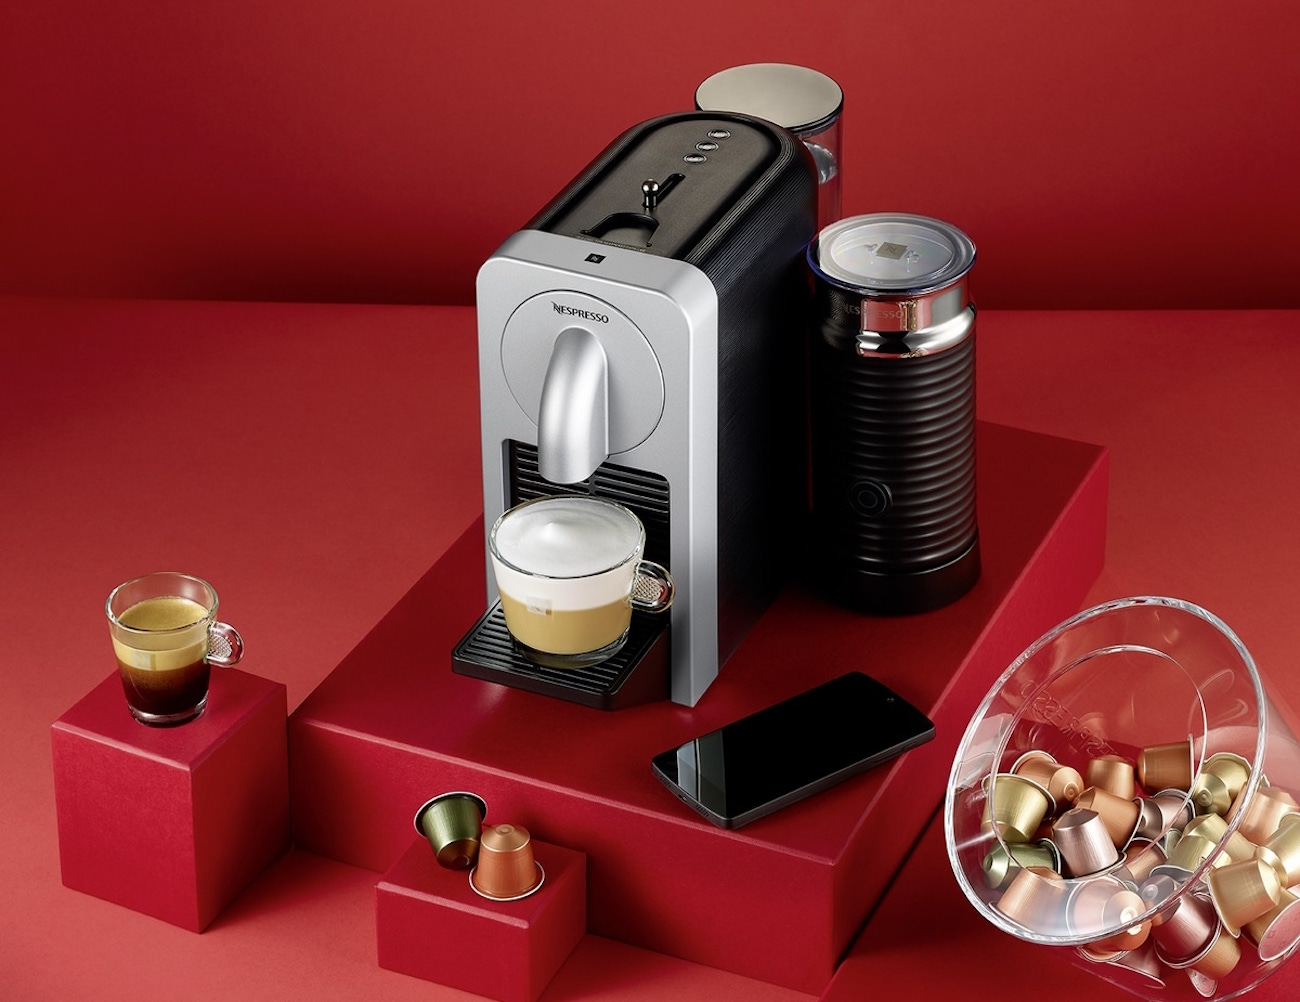 The best affordable espresso machines you can buy in 2019 - Nespresso Prodigio 1